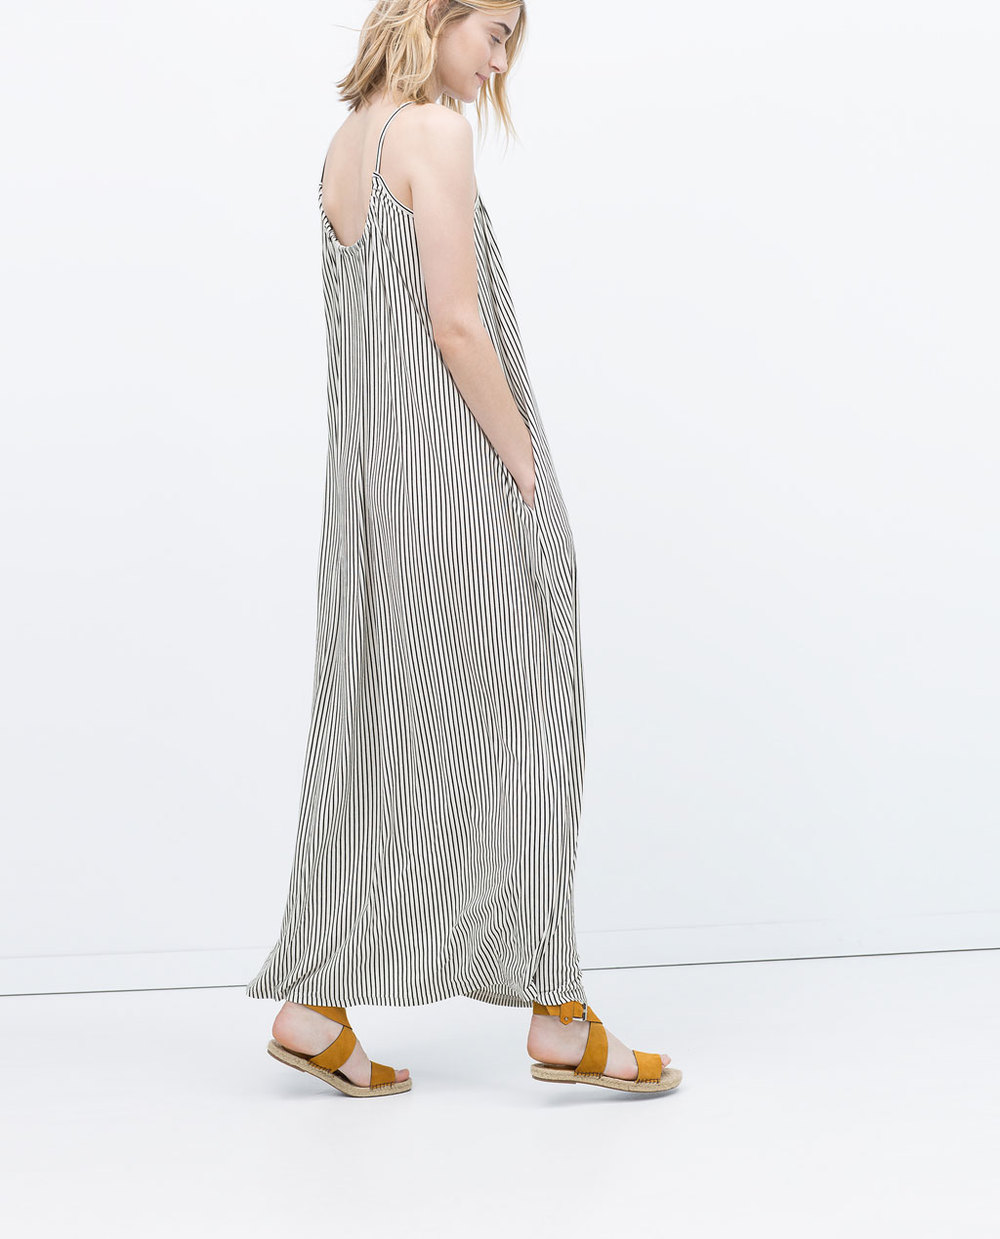 LONG STRIPPED DRESS 29.99 USD